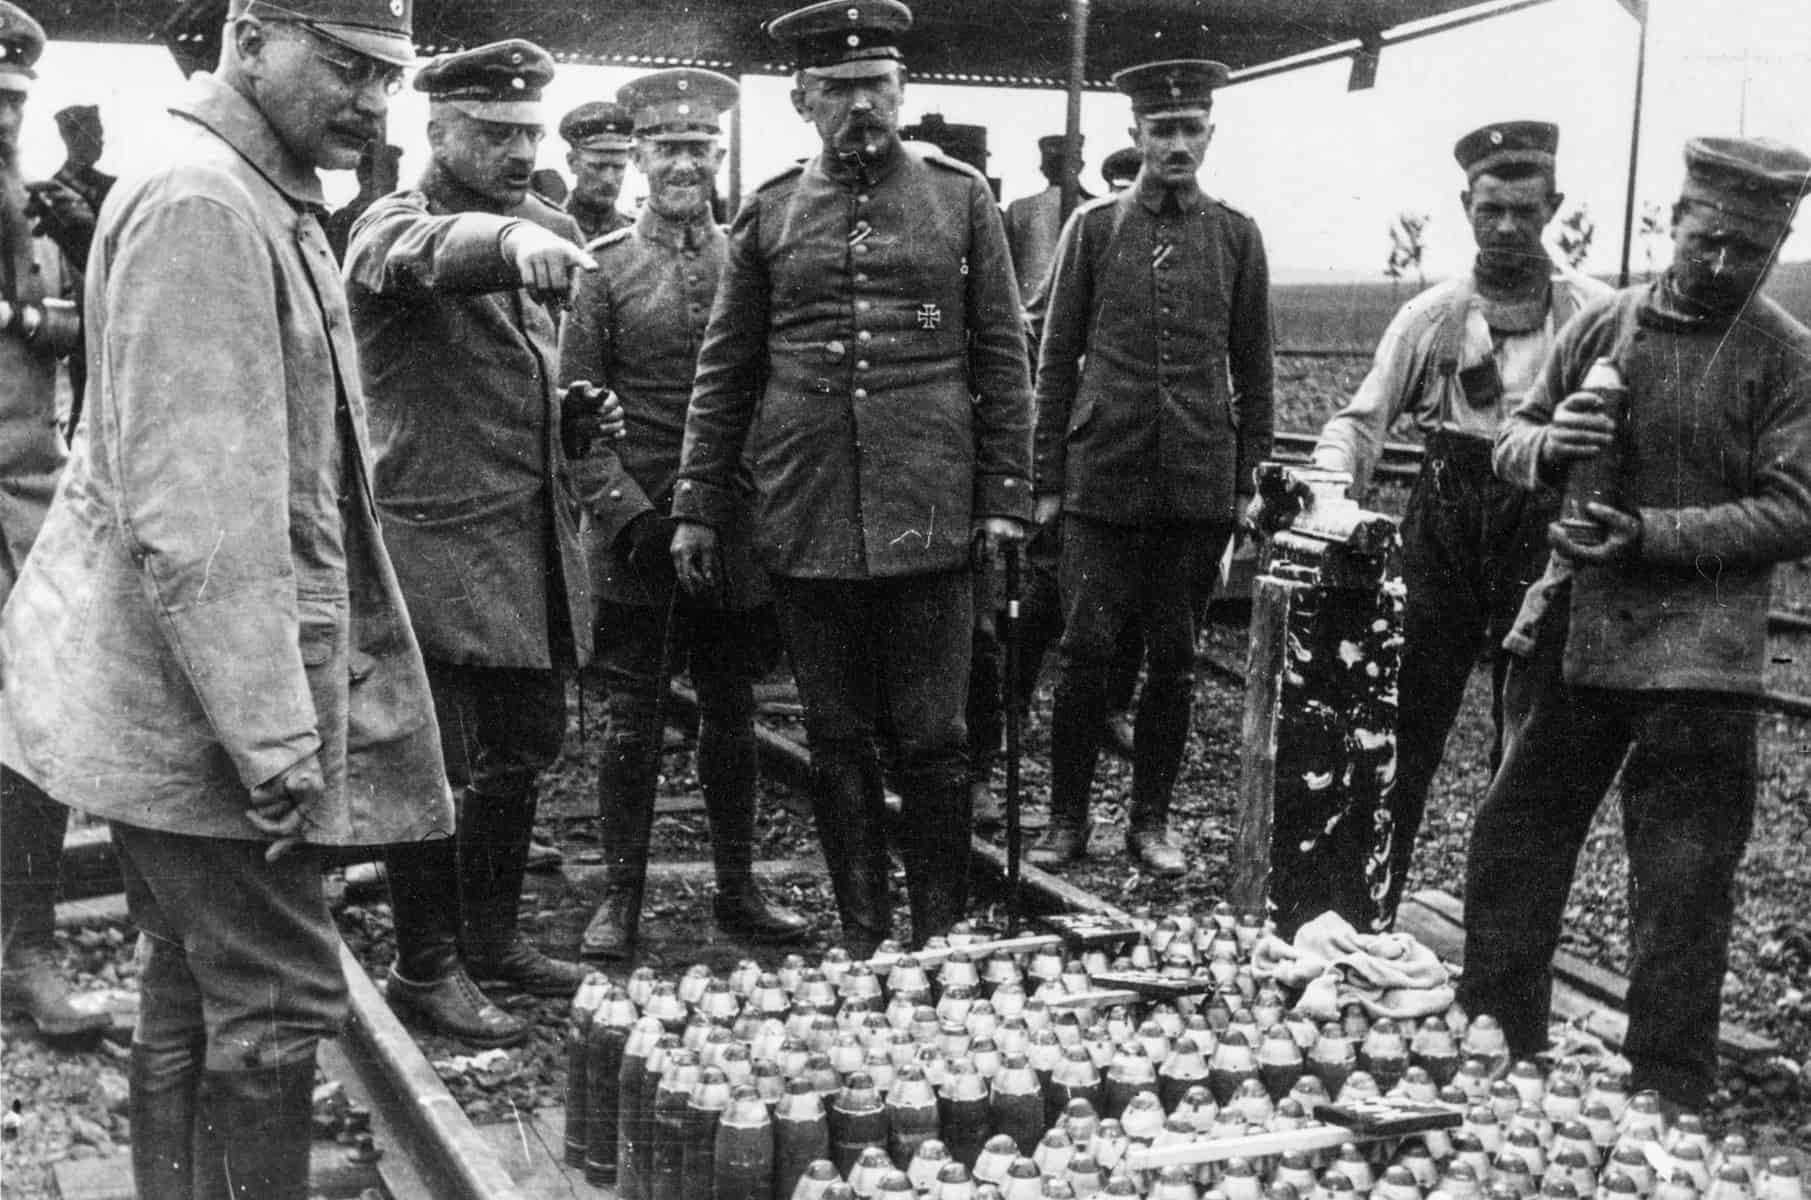 Fritz Haber, the Monster Who Made the Modern World Possible